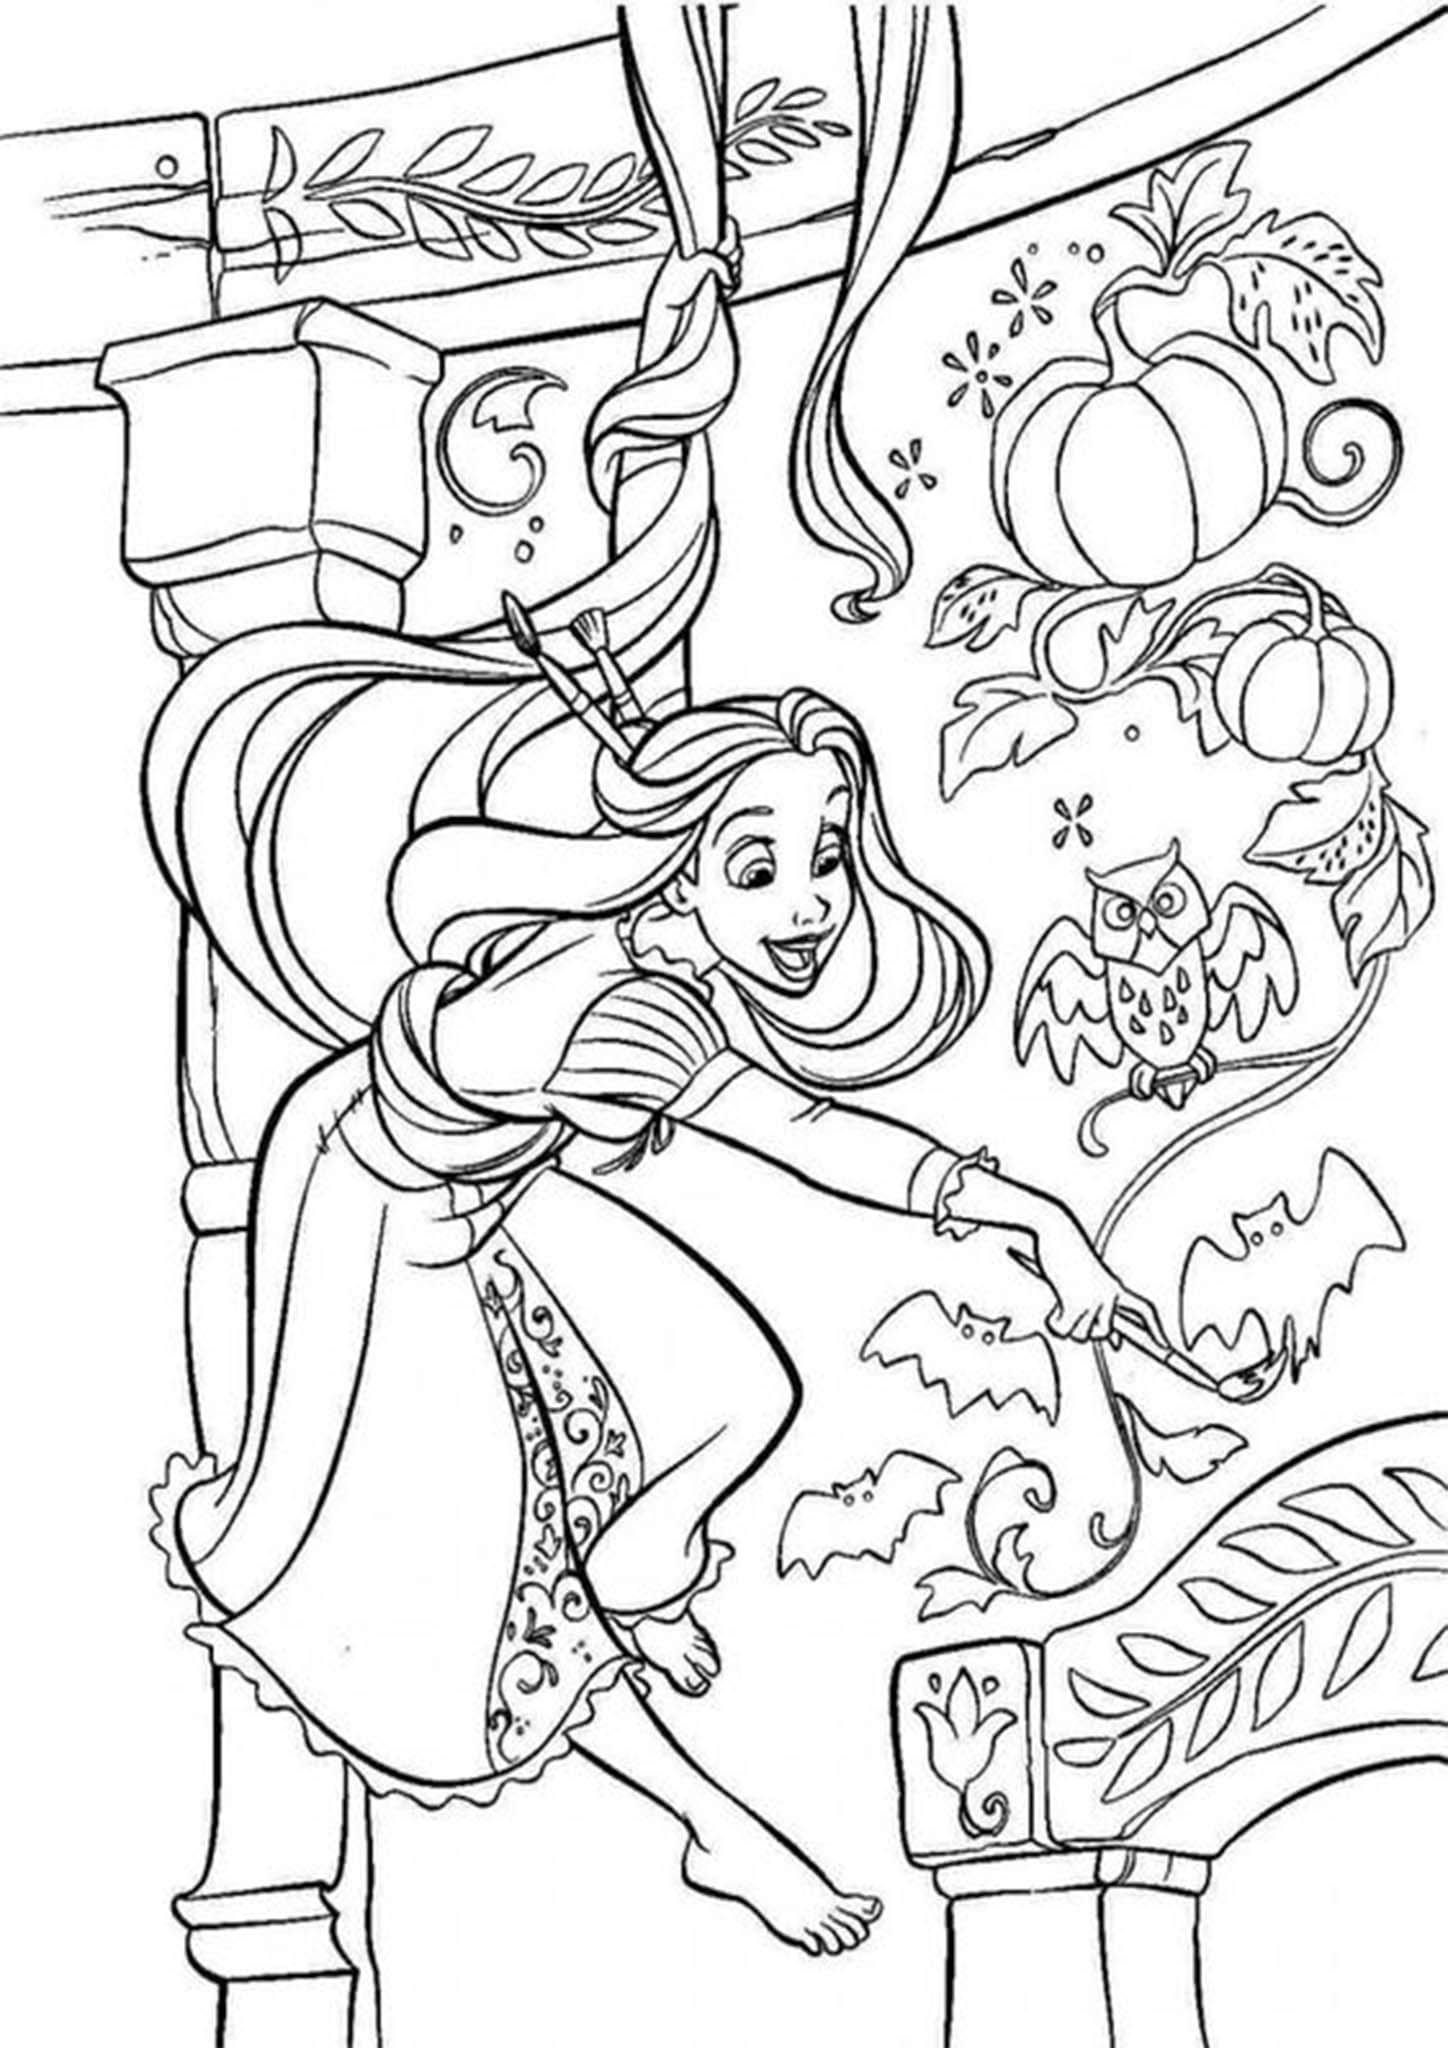 Free Easy To Print Tangled Coloring Pages Tangled Coloring Pages Princess Coloring Pages Rapunzel Coloring Pages